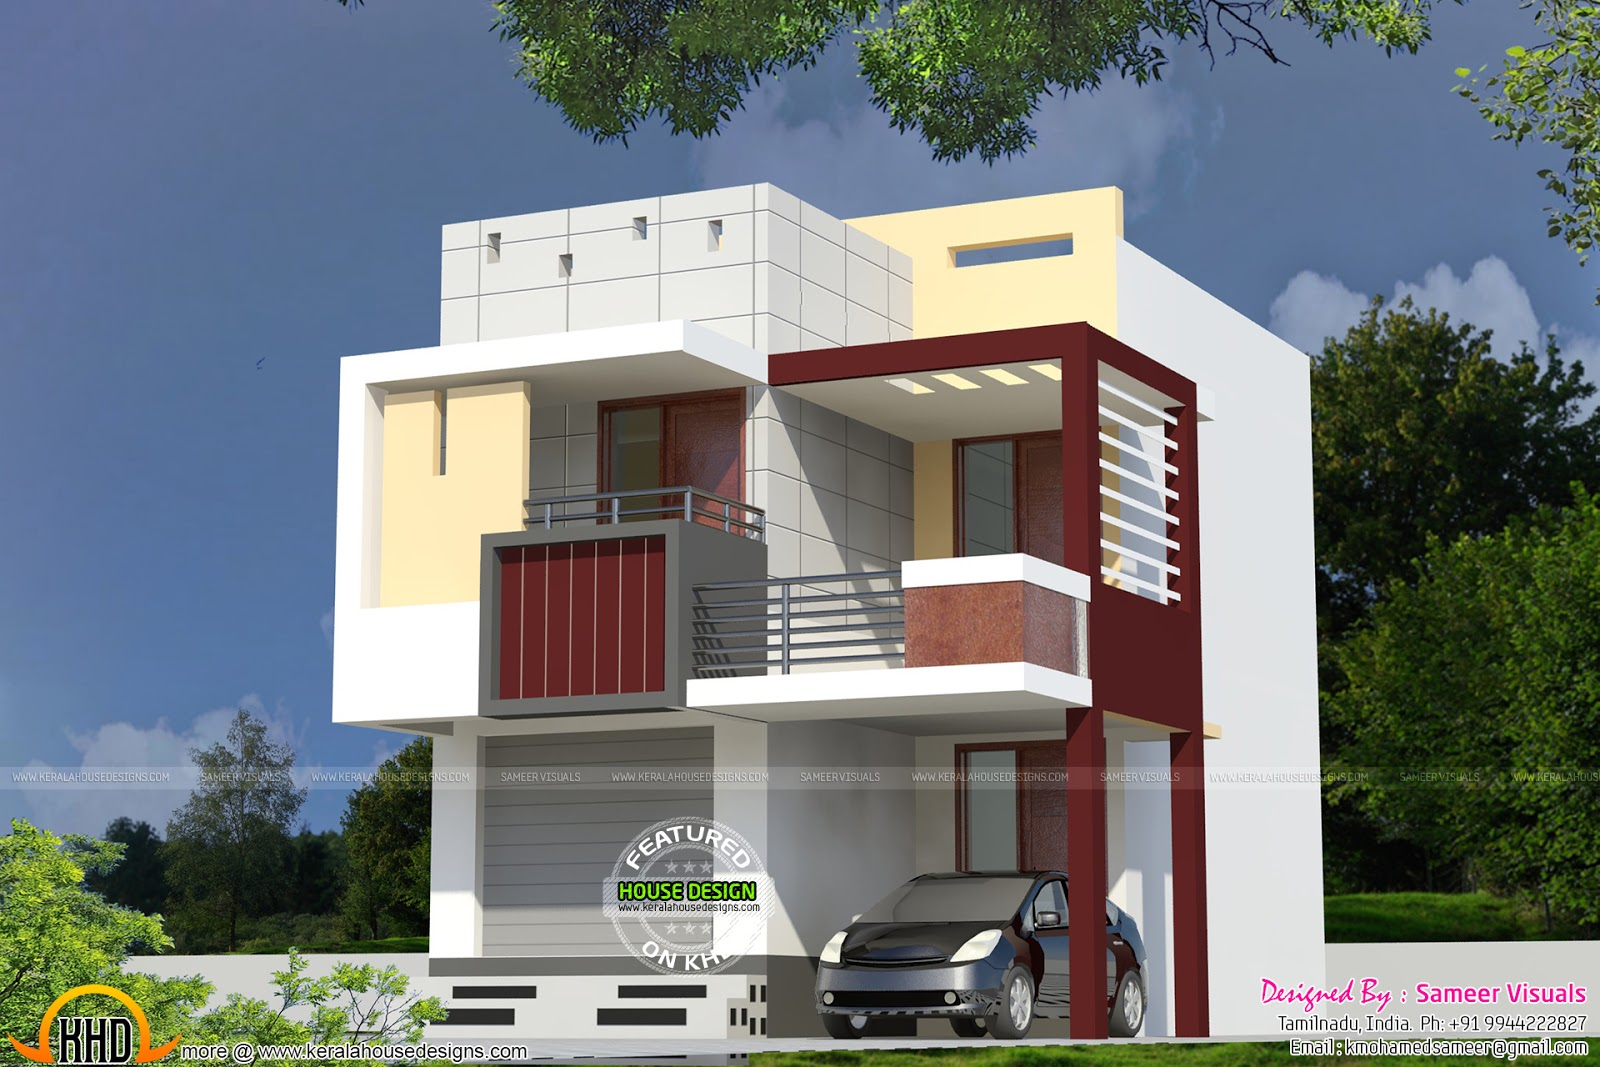 Very small double storied house kerala home design and for Home designs double floor